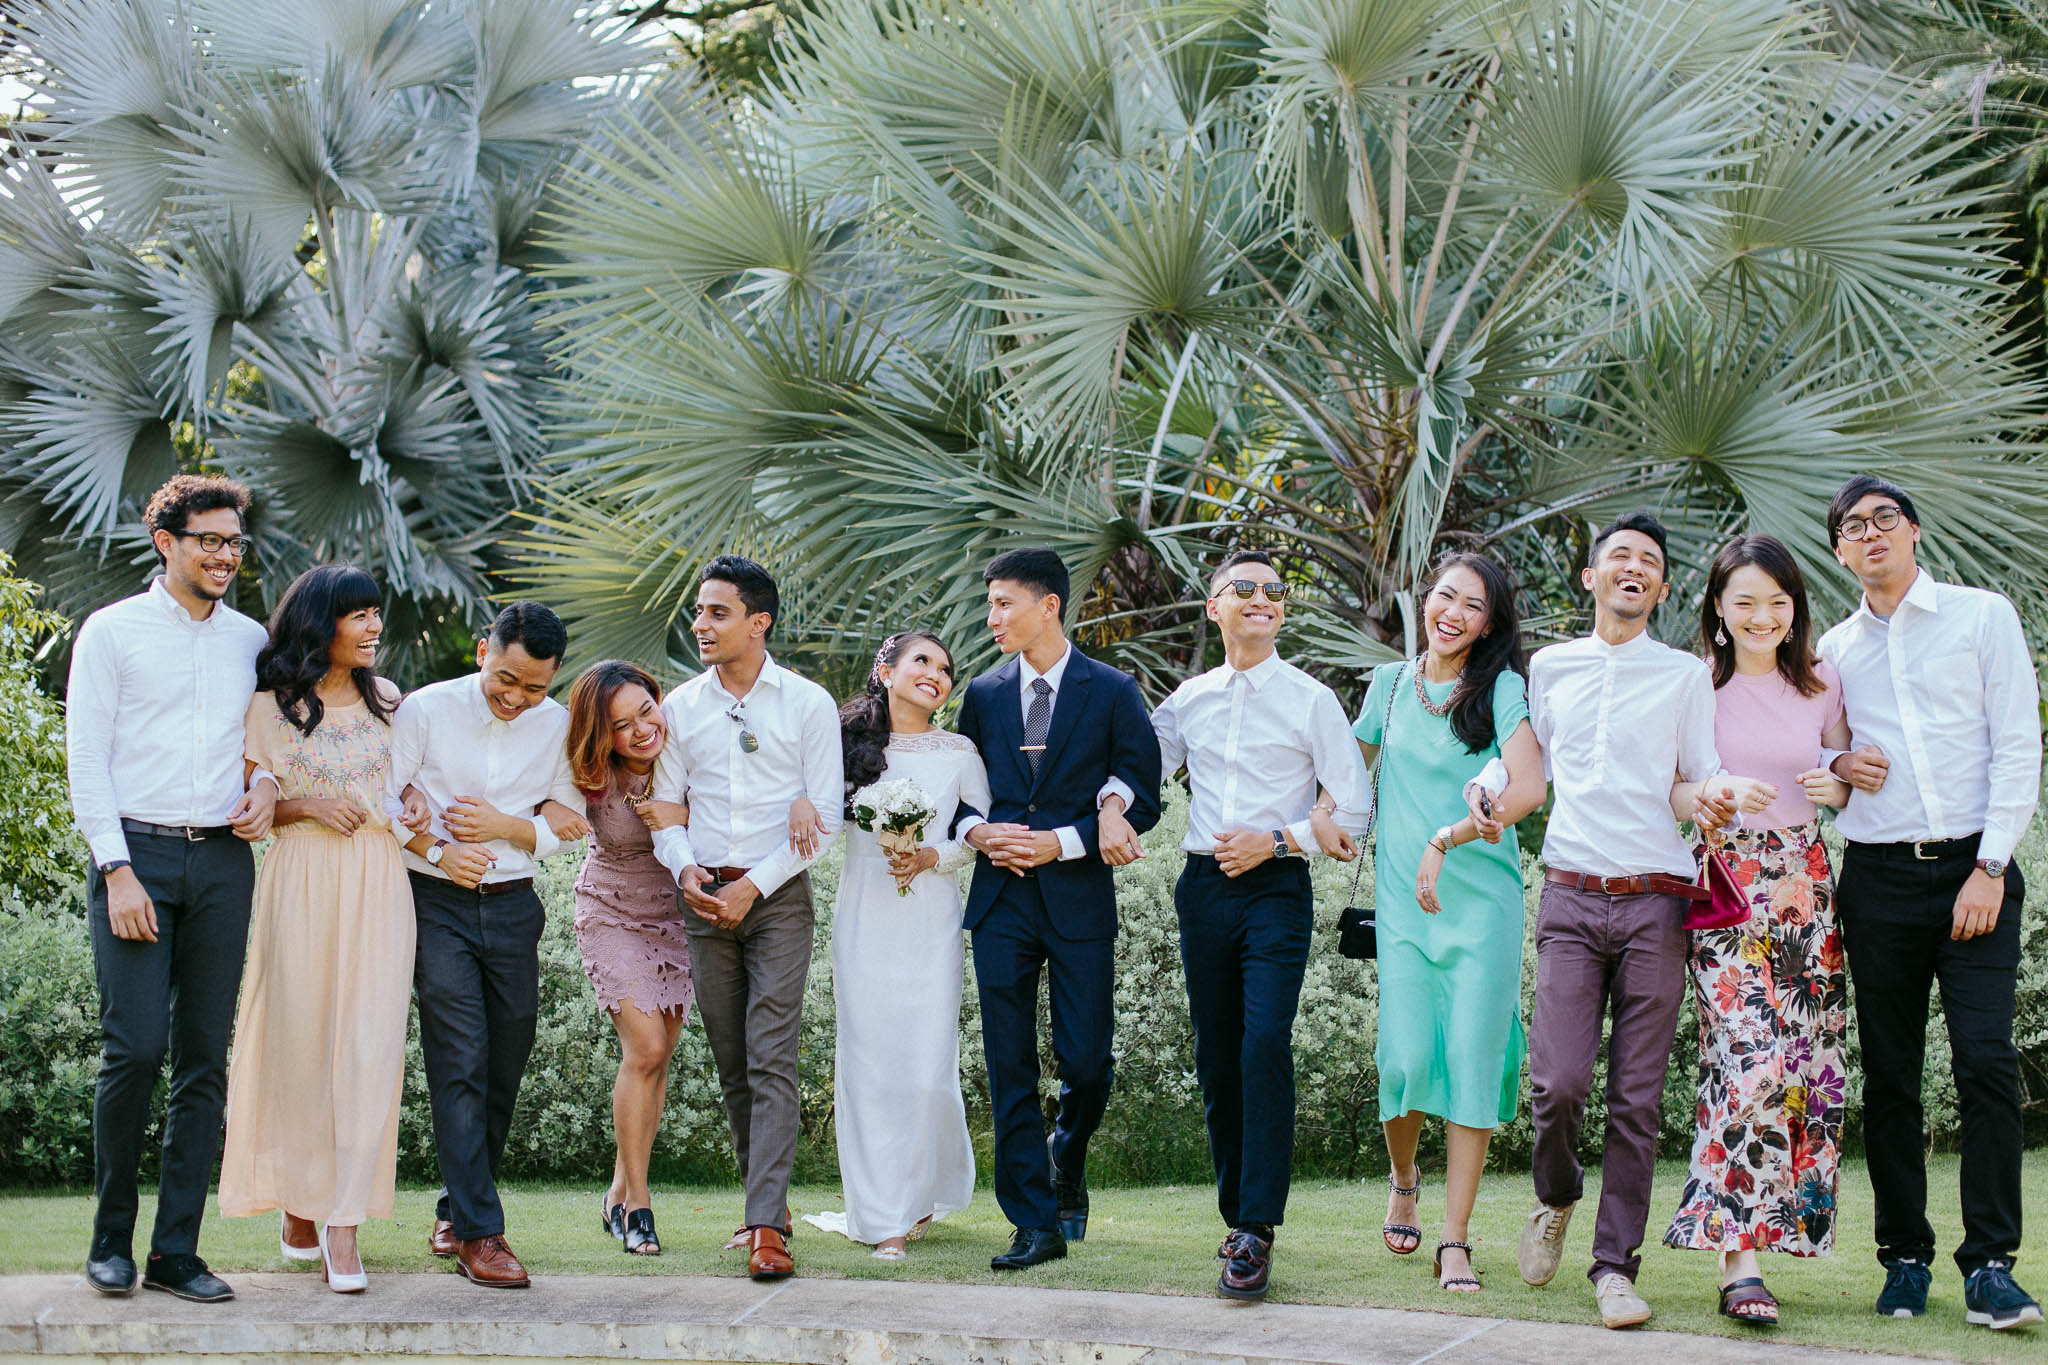 singapore-wedding-photographer-wedding-halimah-muhsin-049.jpg